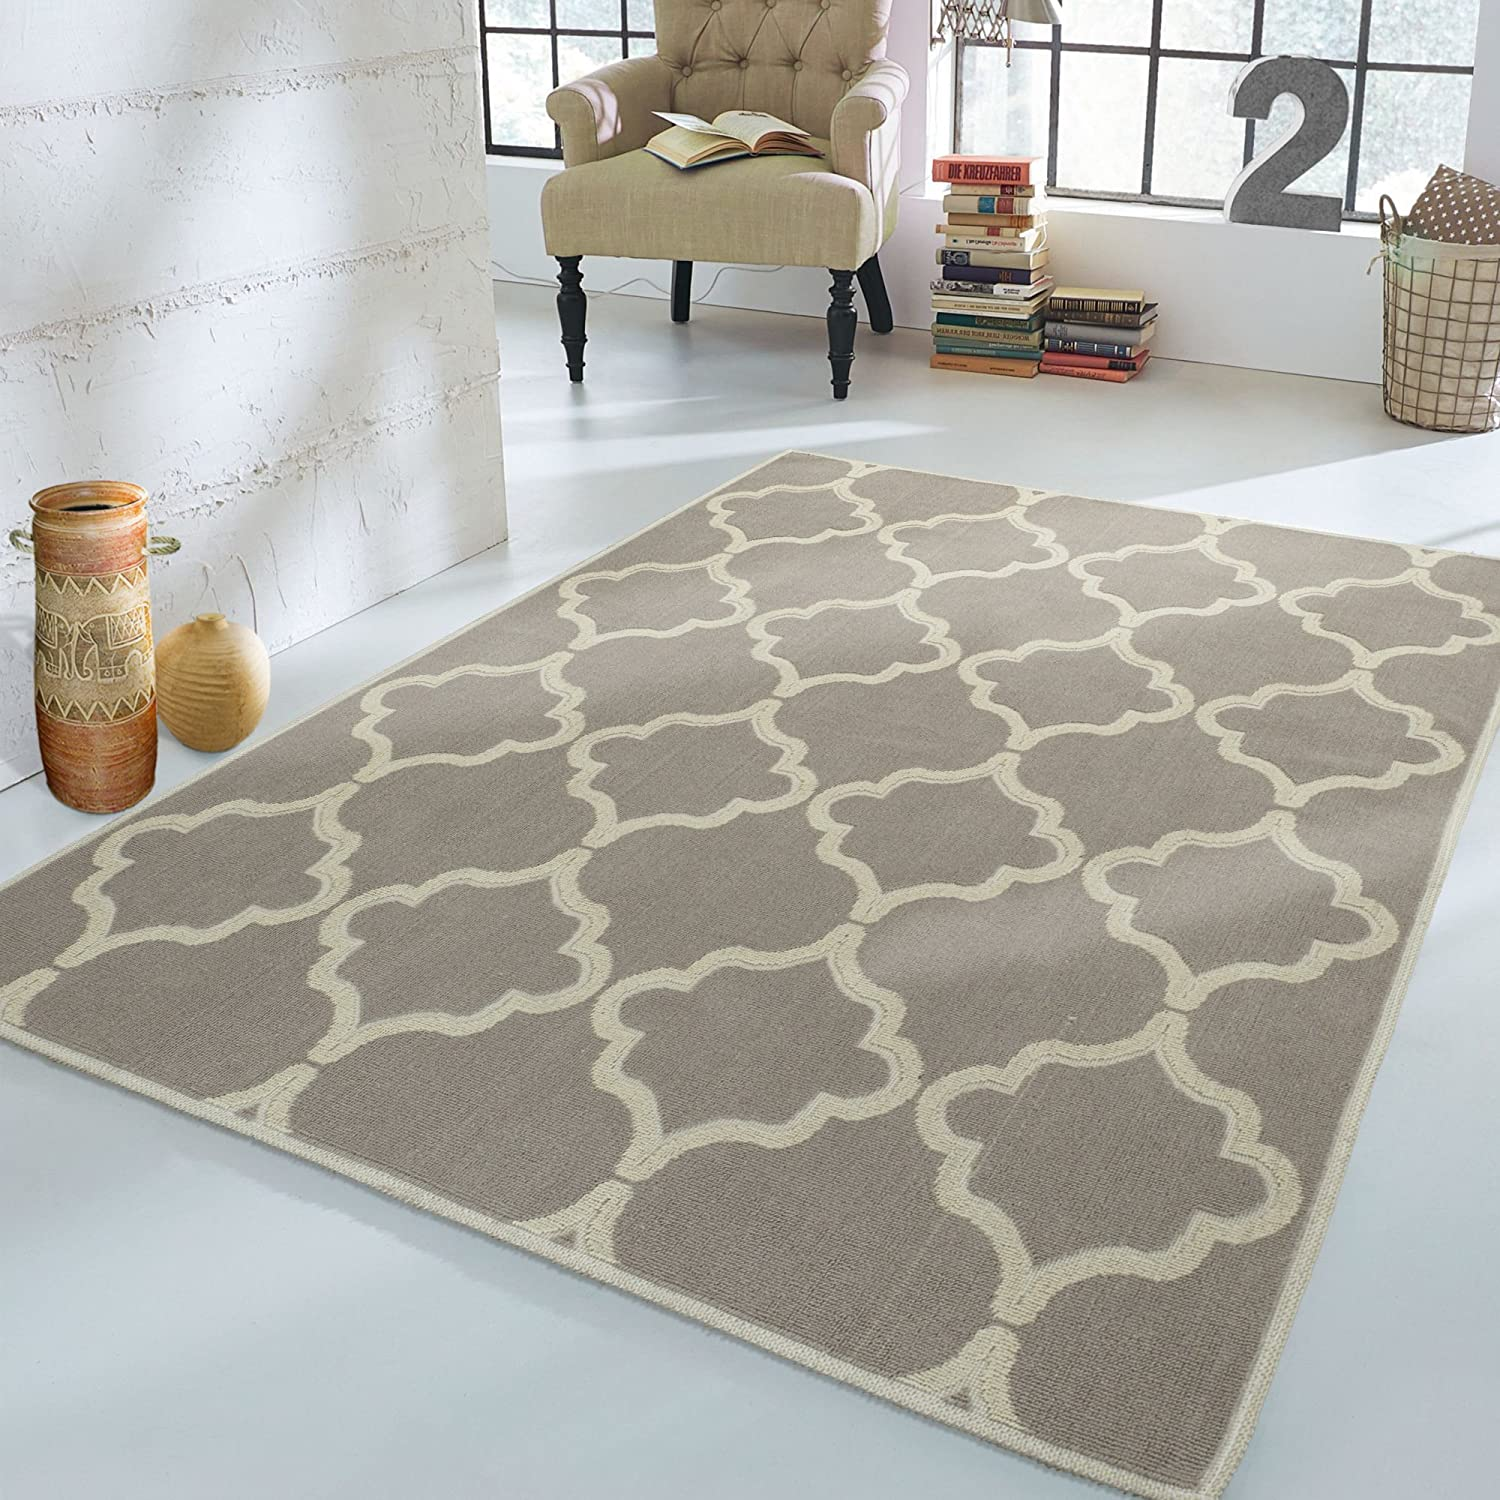 Ottomanson Nature Cotton Kilim Collection Brown Diamond Trellis Design 2'7' X 6'0' Runner Area Rug K10018-3X6